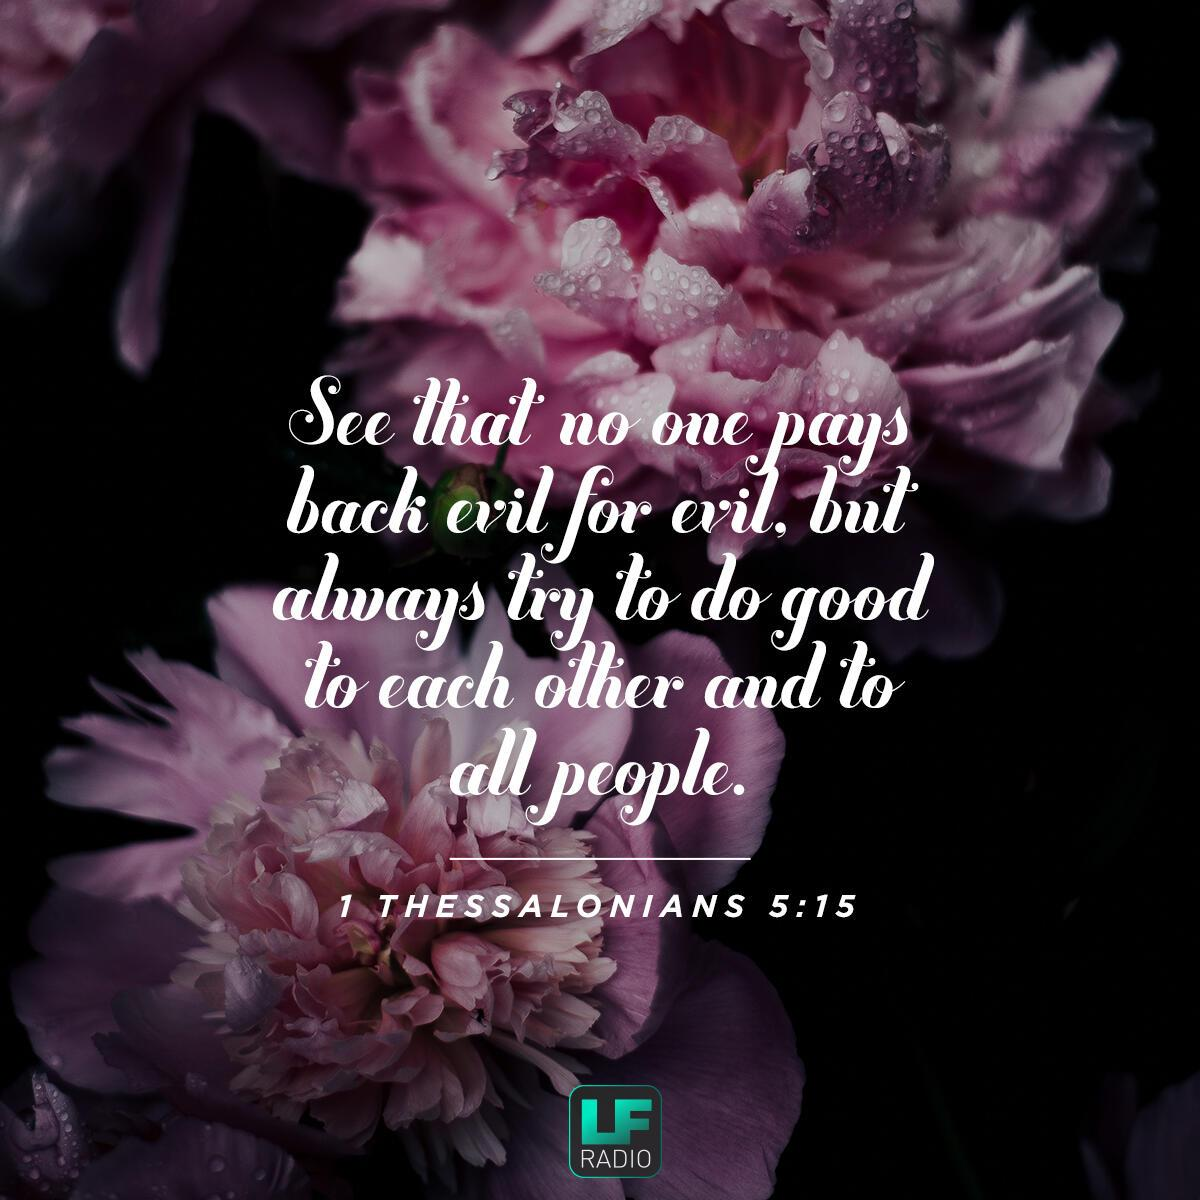 1 Thessalonians 5:15 - Verse of the Day